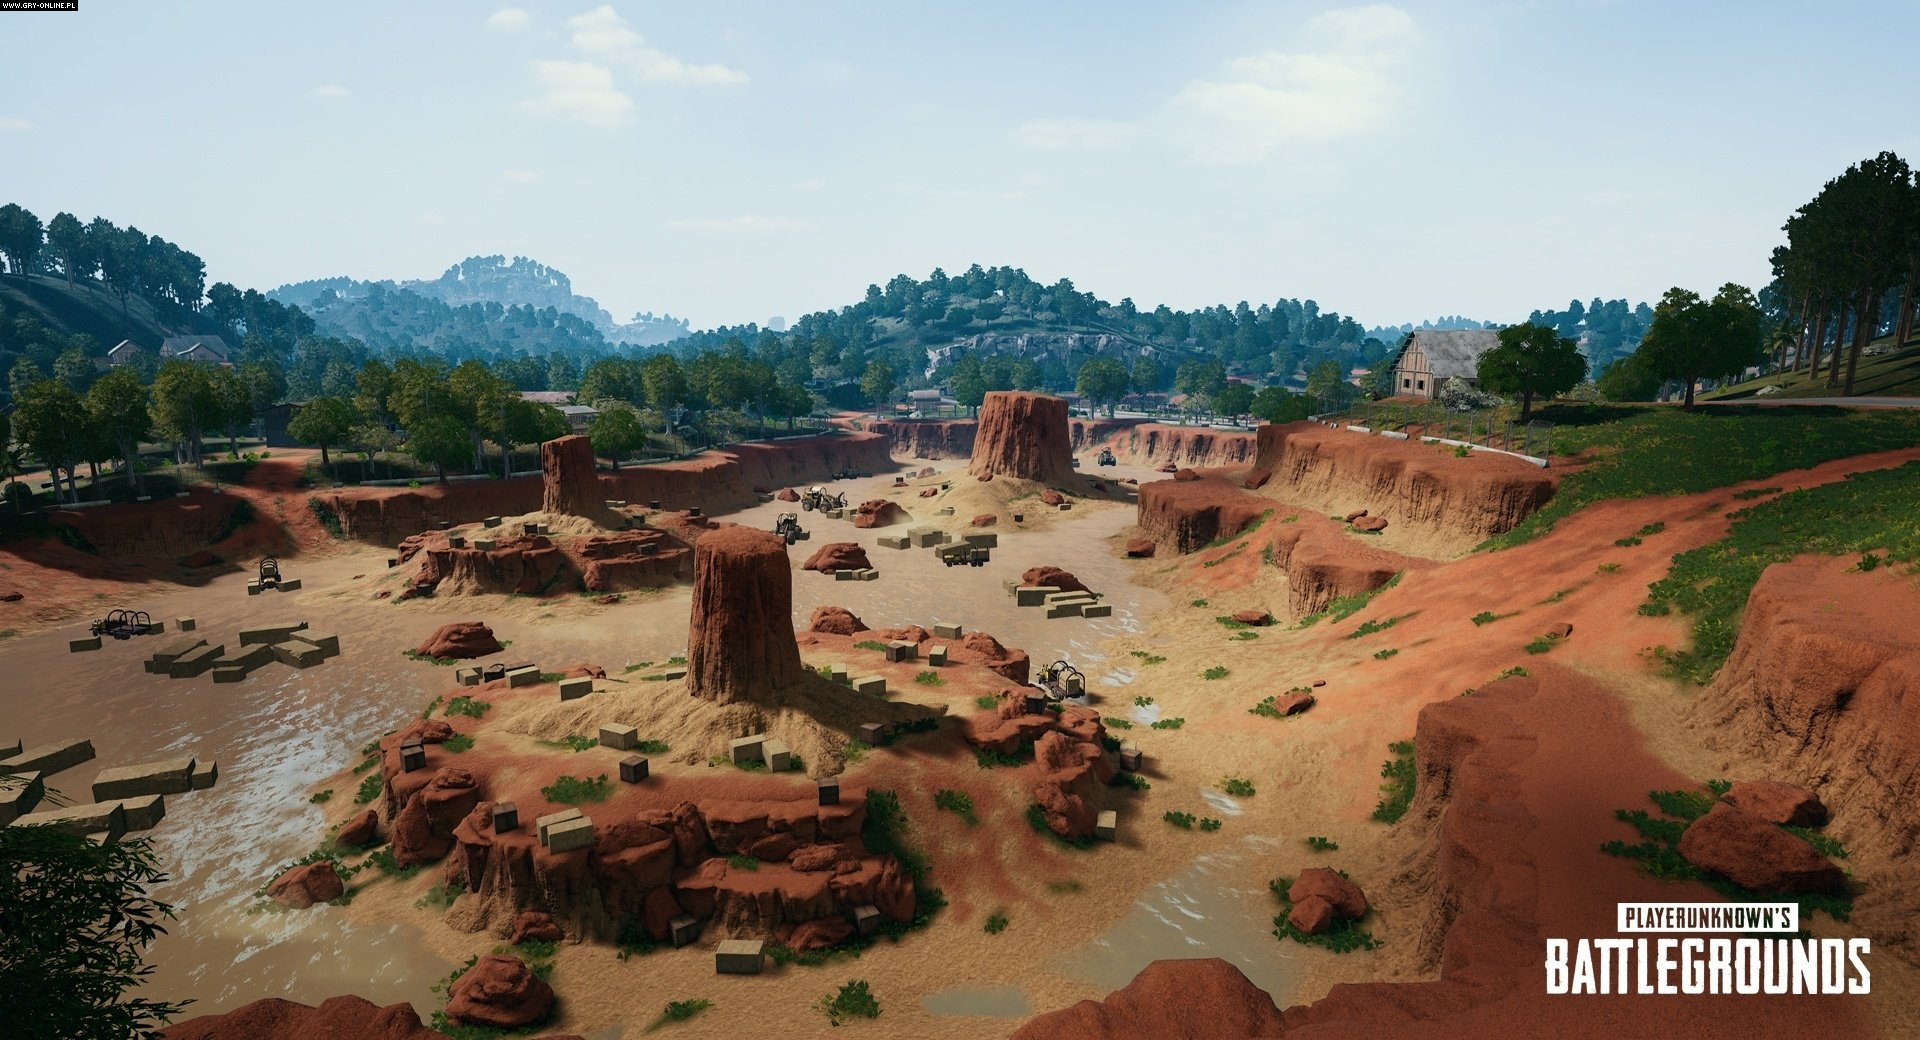 Playerunknown's Battlegrounds PC, XONE Gry Screen 4/60, PUBG Corporation, Bluehole